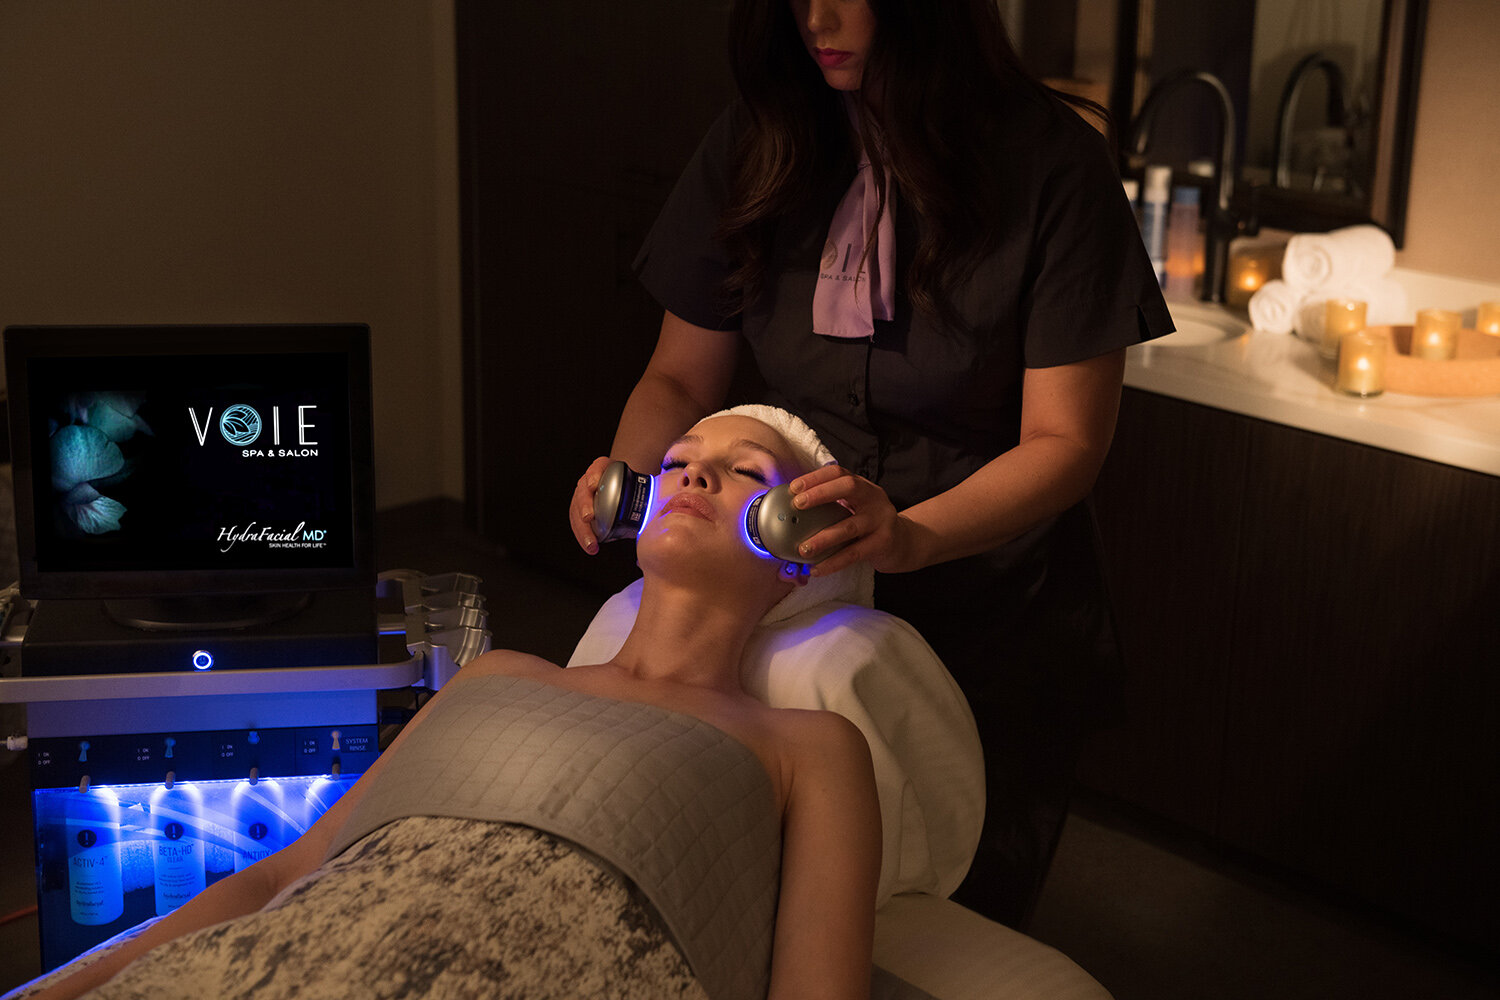 Voie Spa & Salon offers a wide range of treatments including Codage facials and wine mask treatments from France, and hydra-cleansing treatments tailored to individual needs.